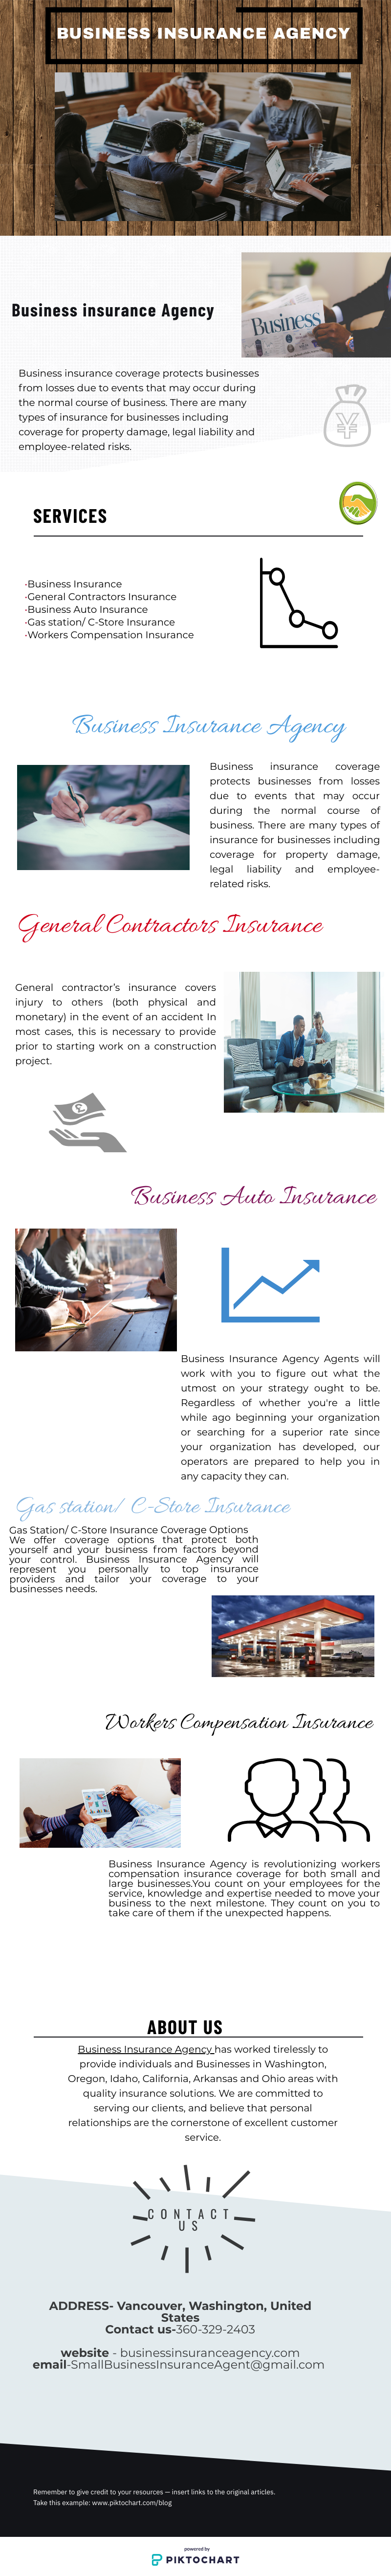 Business Insurance Agency Is One Of The Leading Organisation In